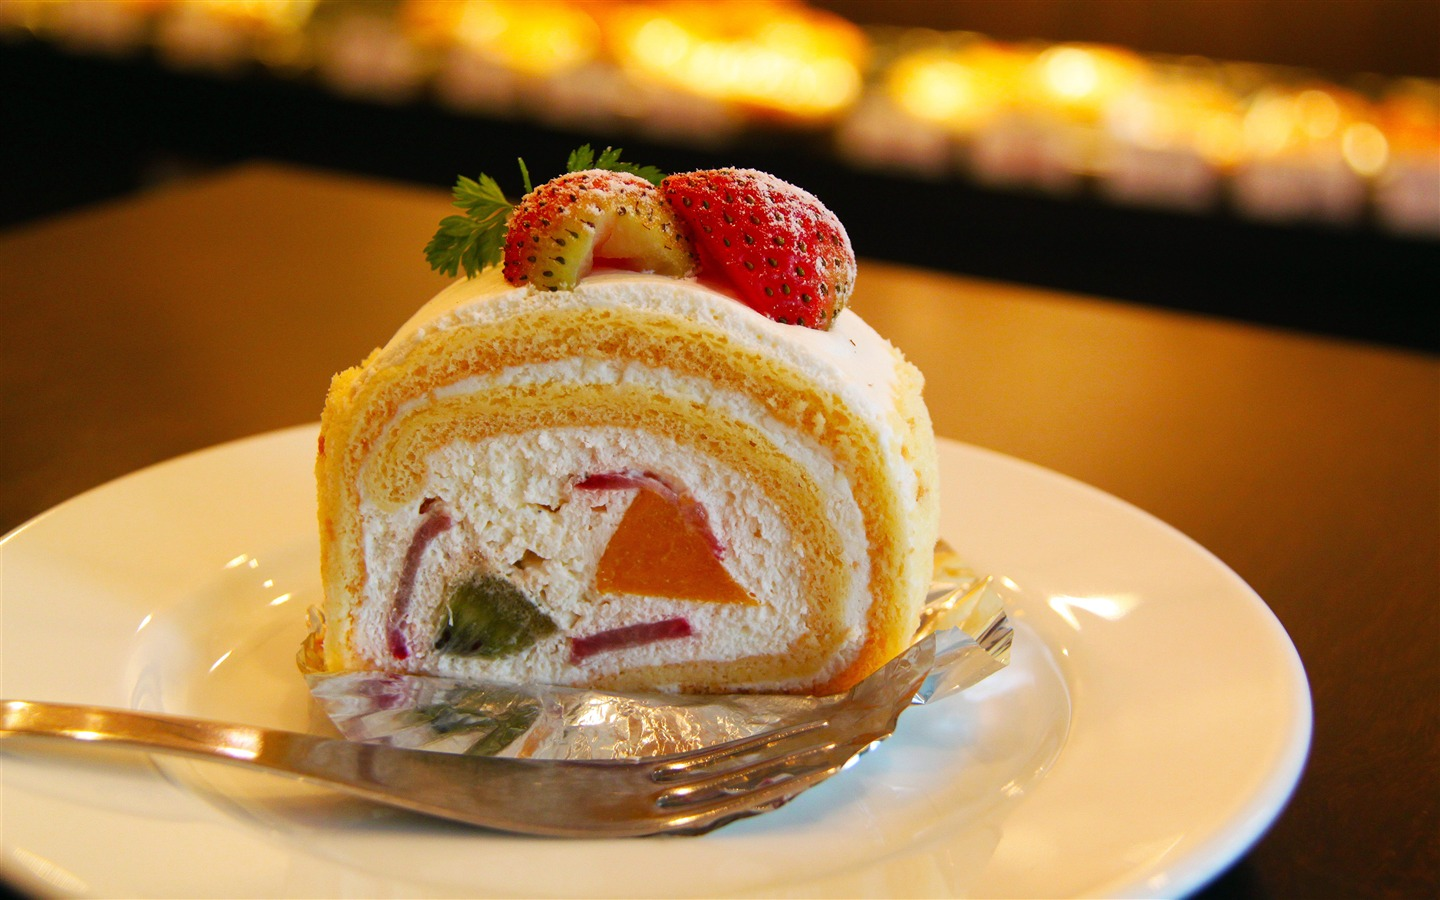 Sweet fruit strawberry cake close-up - 1440x900 wallpaper download